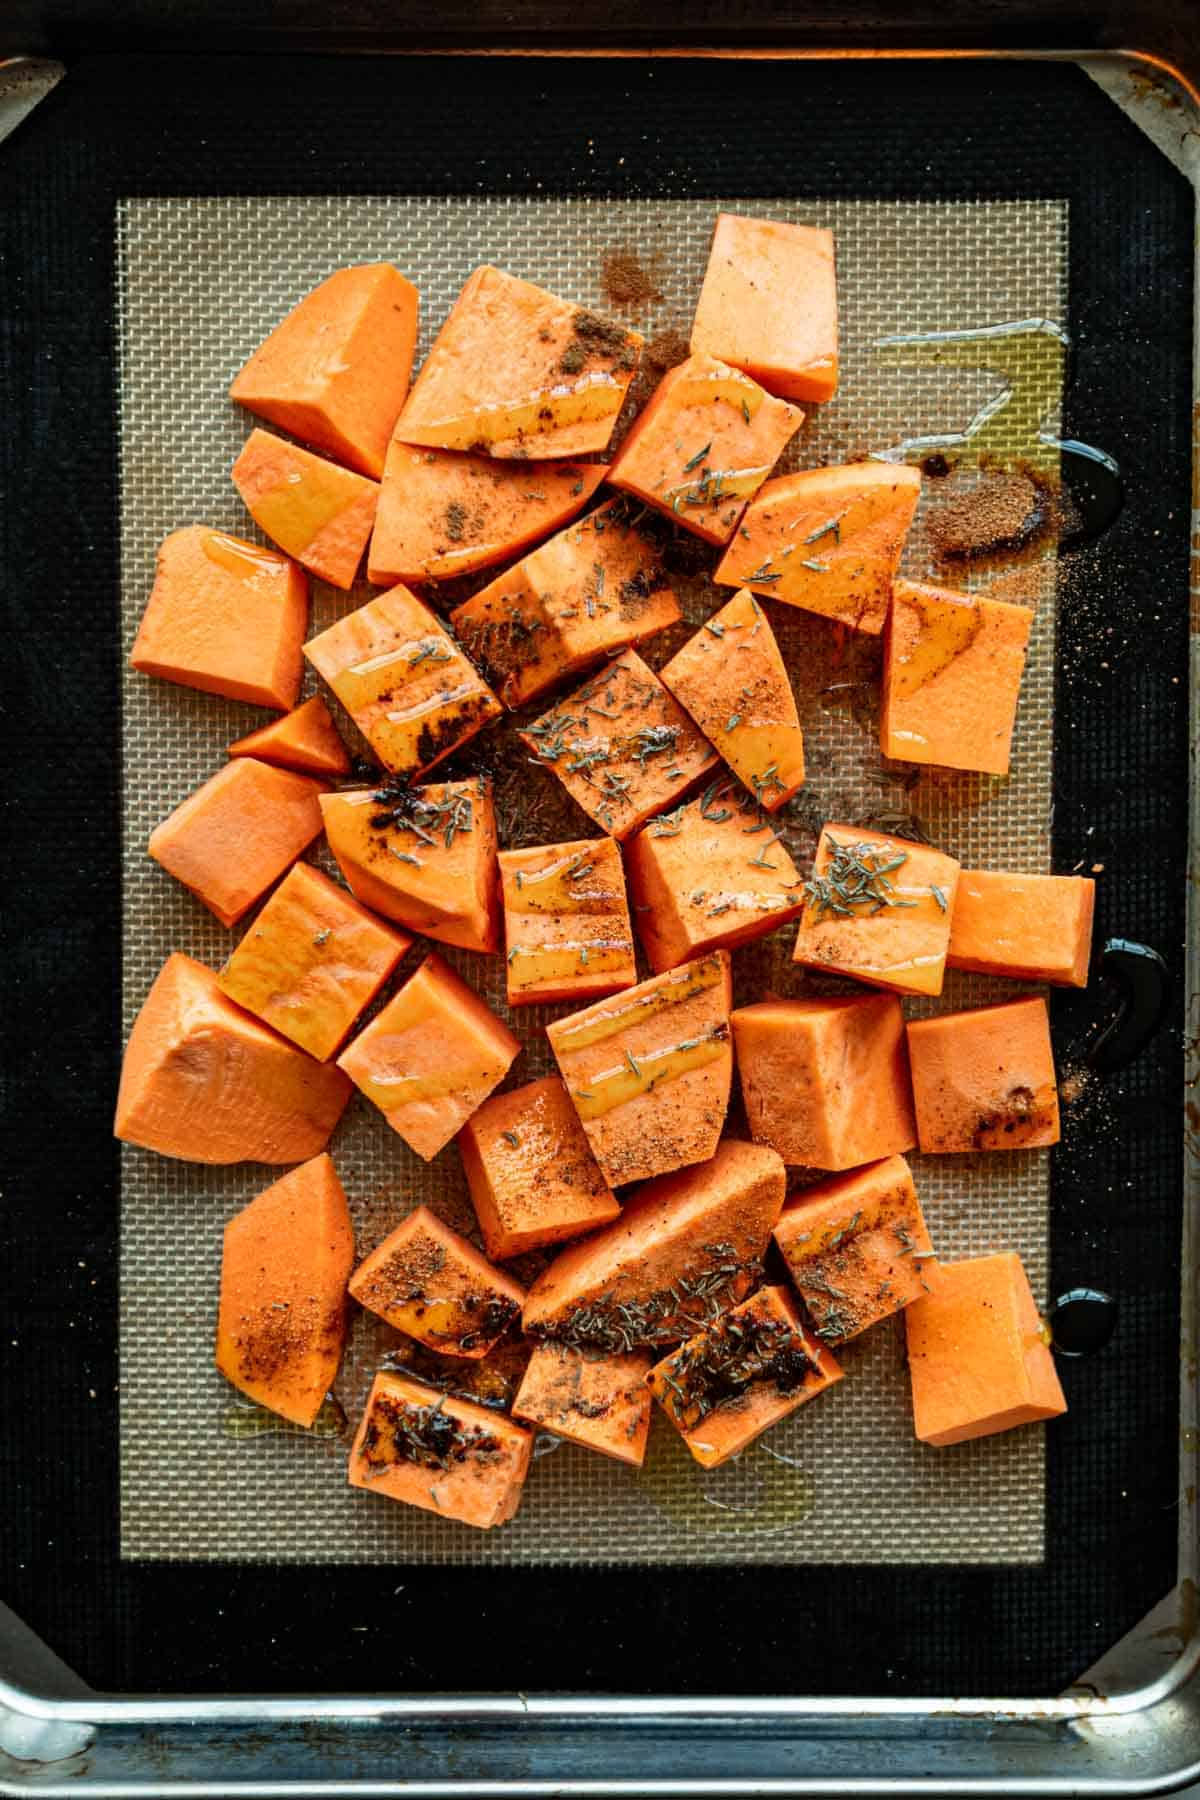 Chopped sweet potato on a baking sheet with seasonings and a drizzle of olive oil.